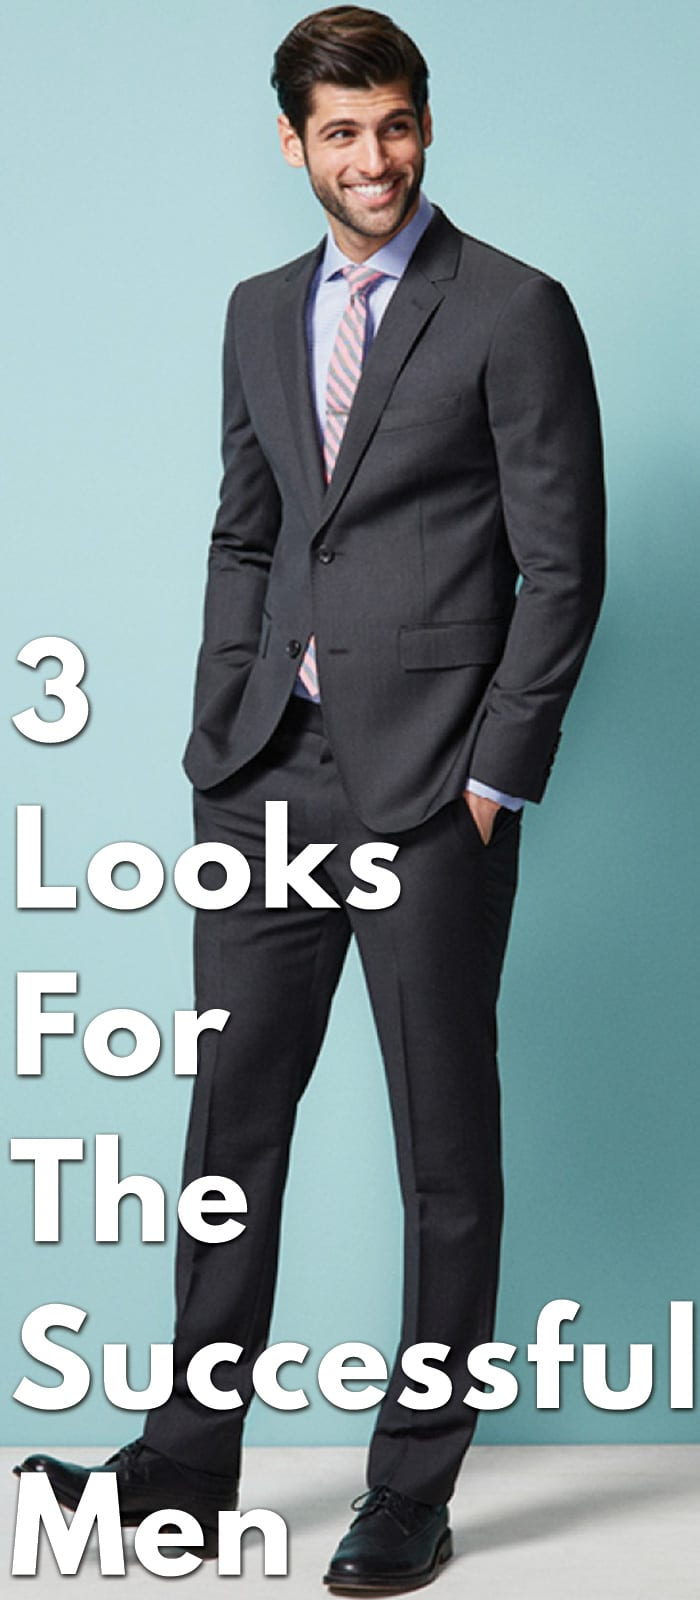 3 Looks For The Successful Men